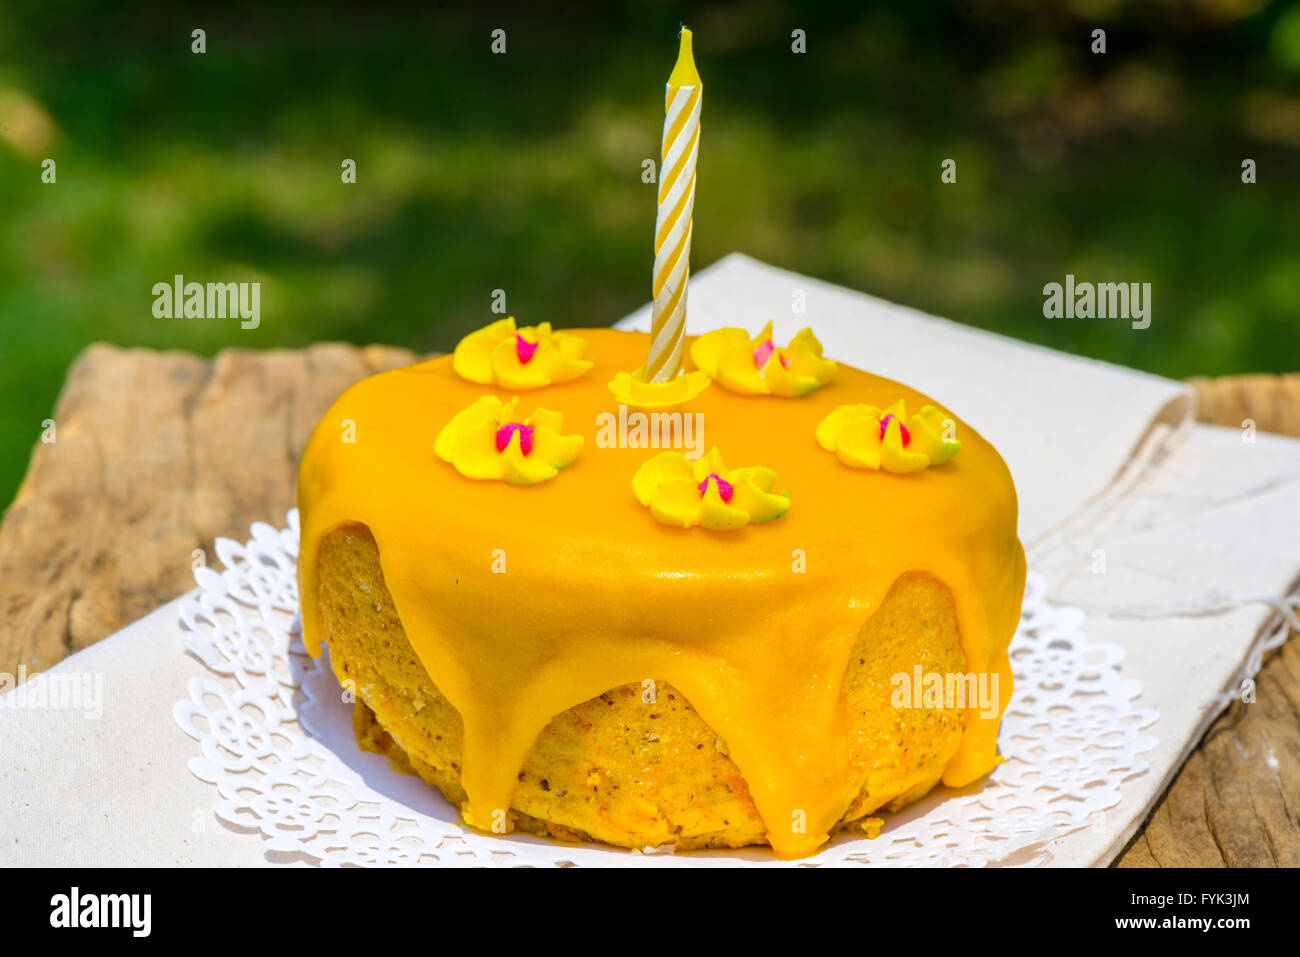 Yellow Motif One Year Old Birthday Cake - Stock Image